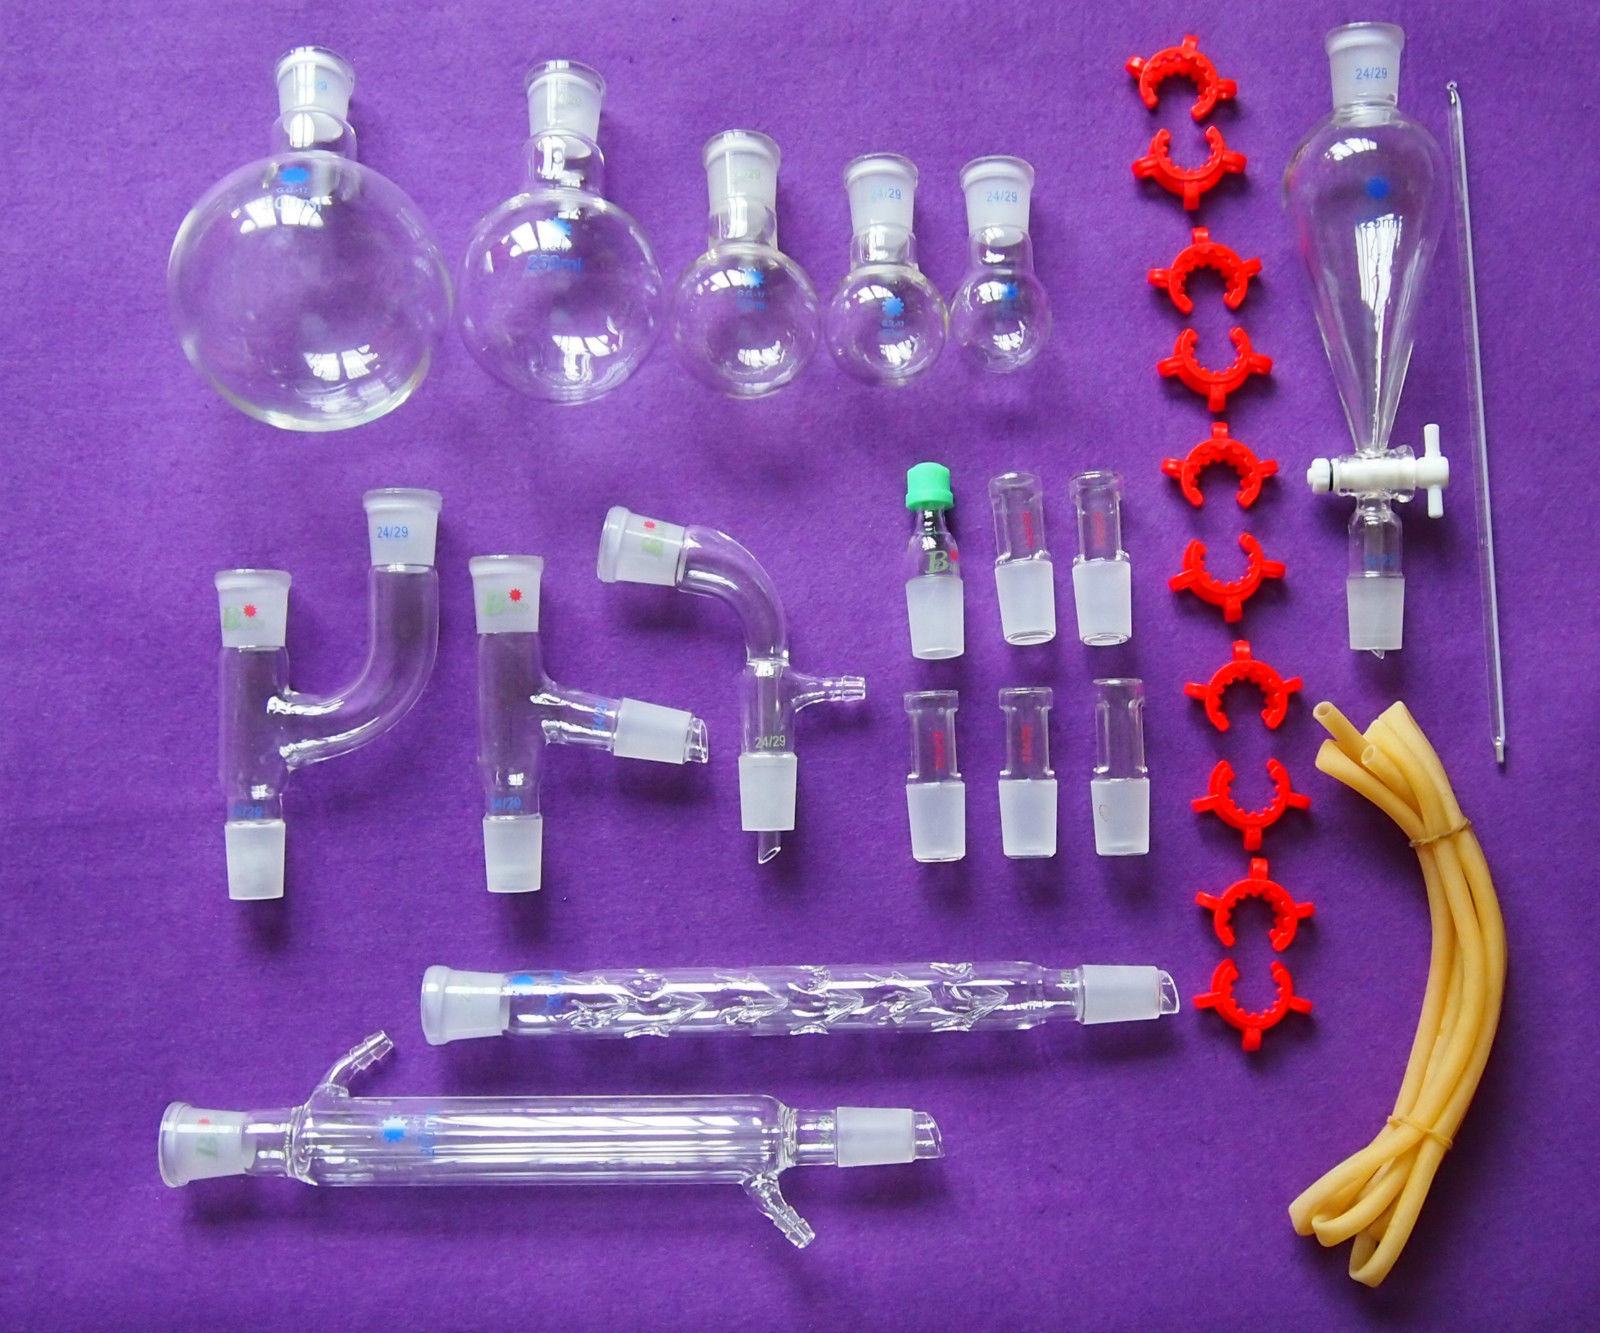 New Chemical Glassware kit Laboratory Glass Set With Ground Joints 24 29 29Pcs